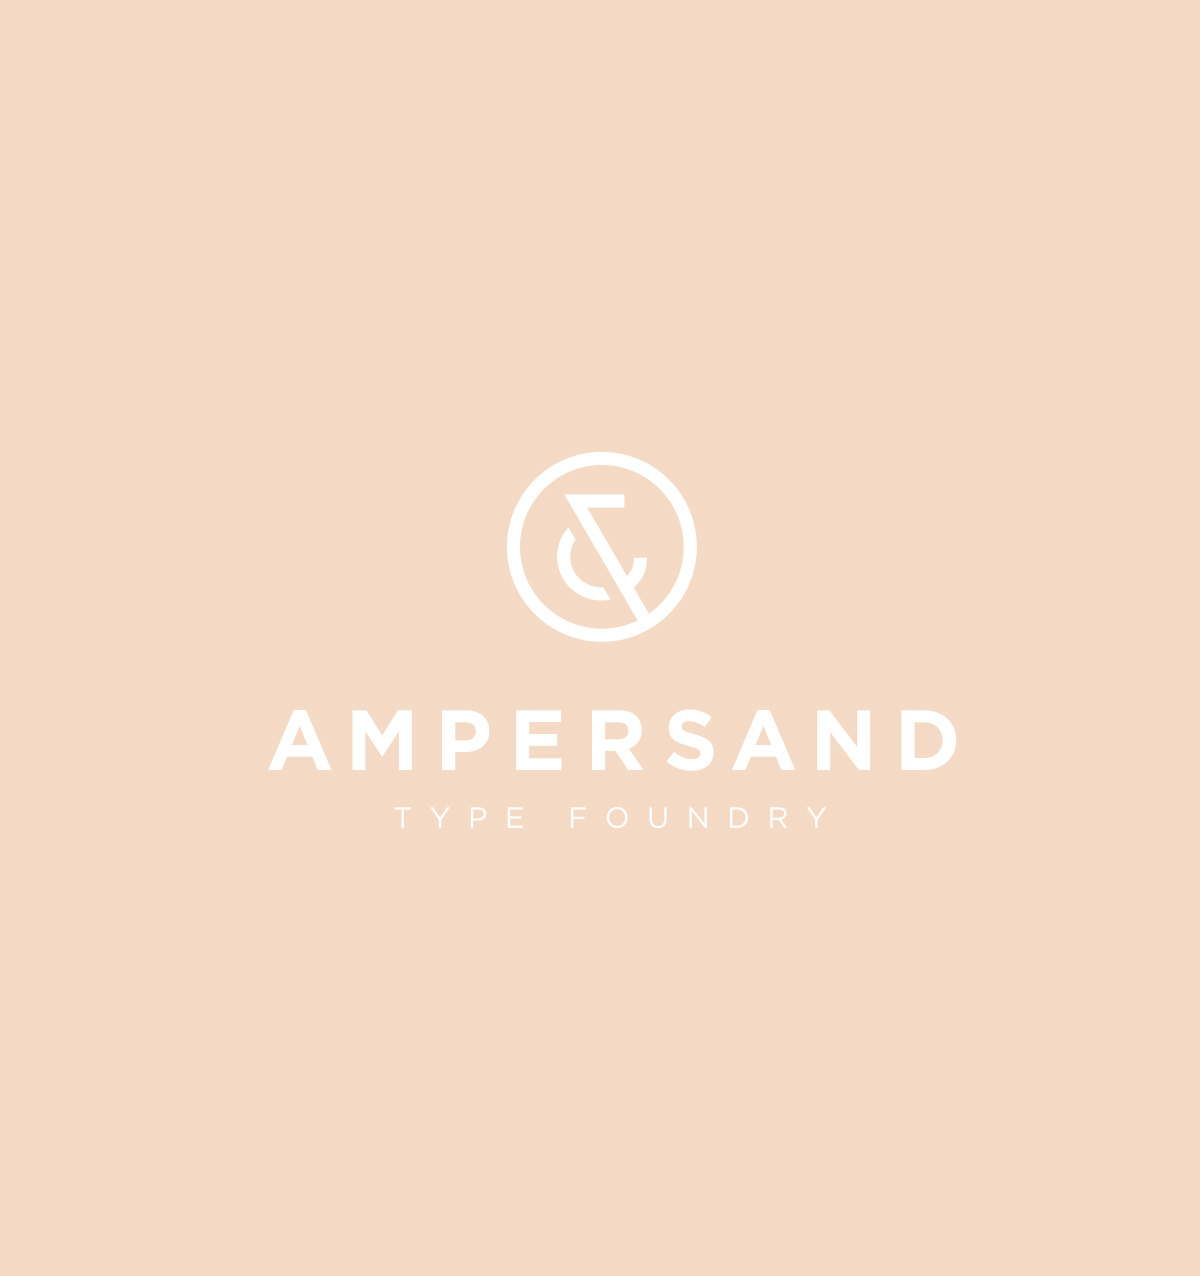 Ampersand Type Foundry  Branding - 2013